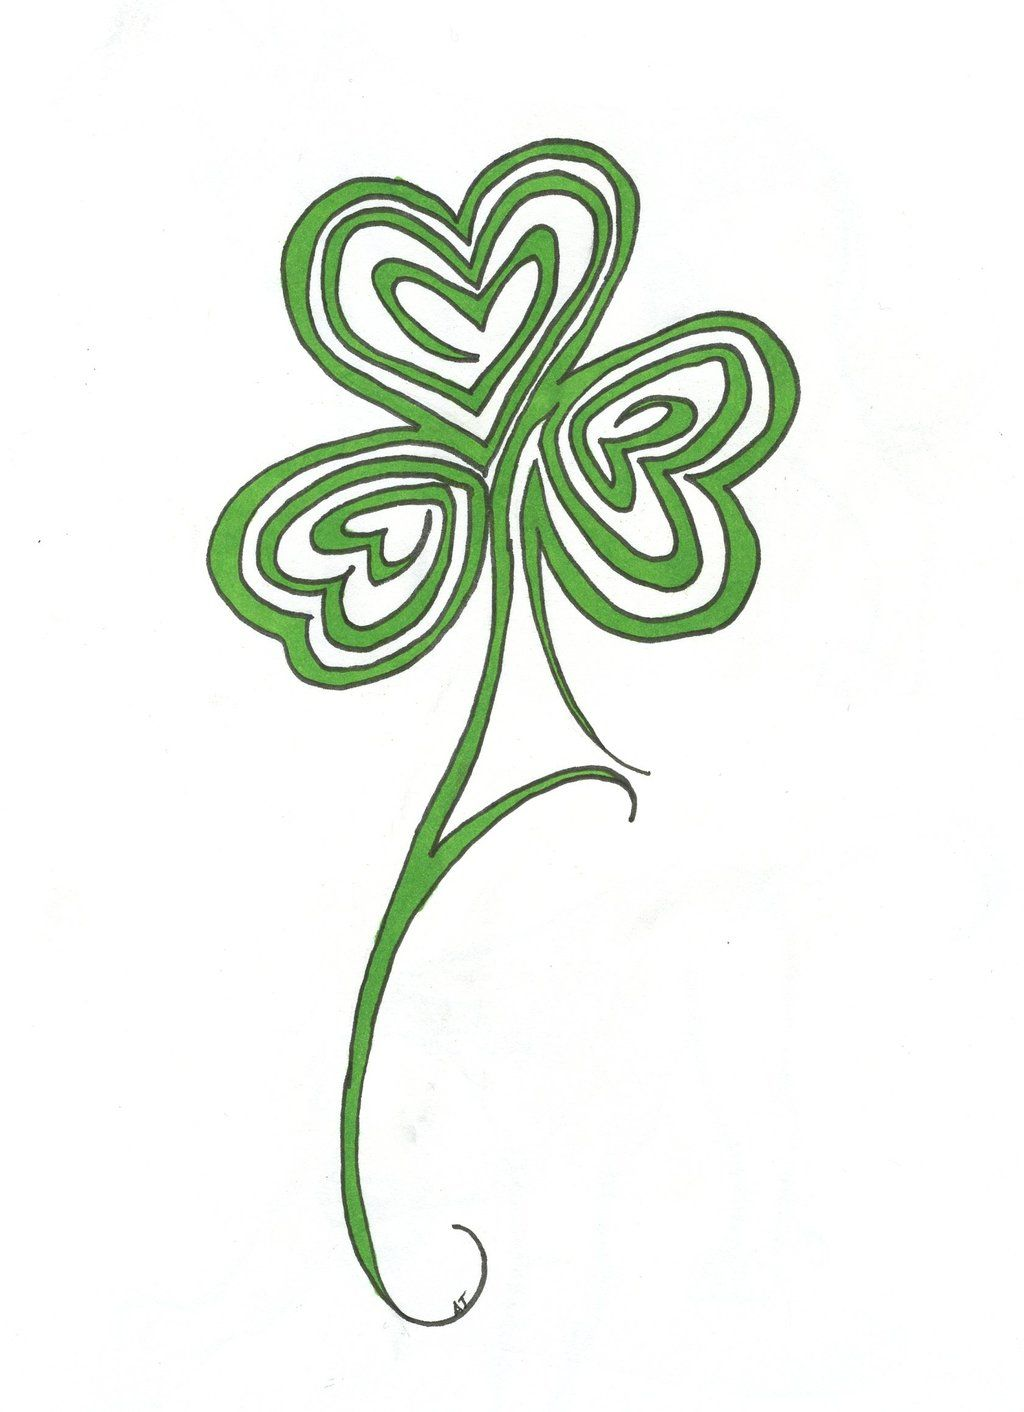 shamrock tattoos designs ideas and meaning tattoos for you ink pinterest shamrock. Black Bedroom Furniture Sets. Home Design Ideas